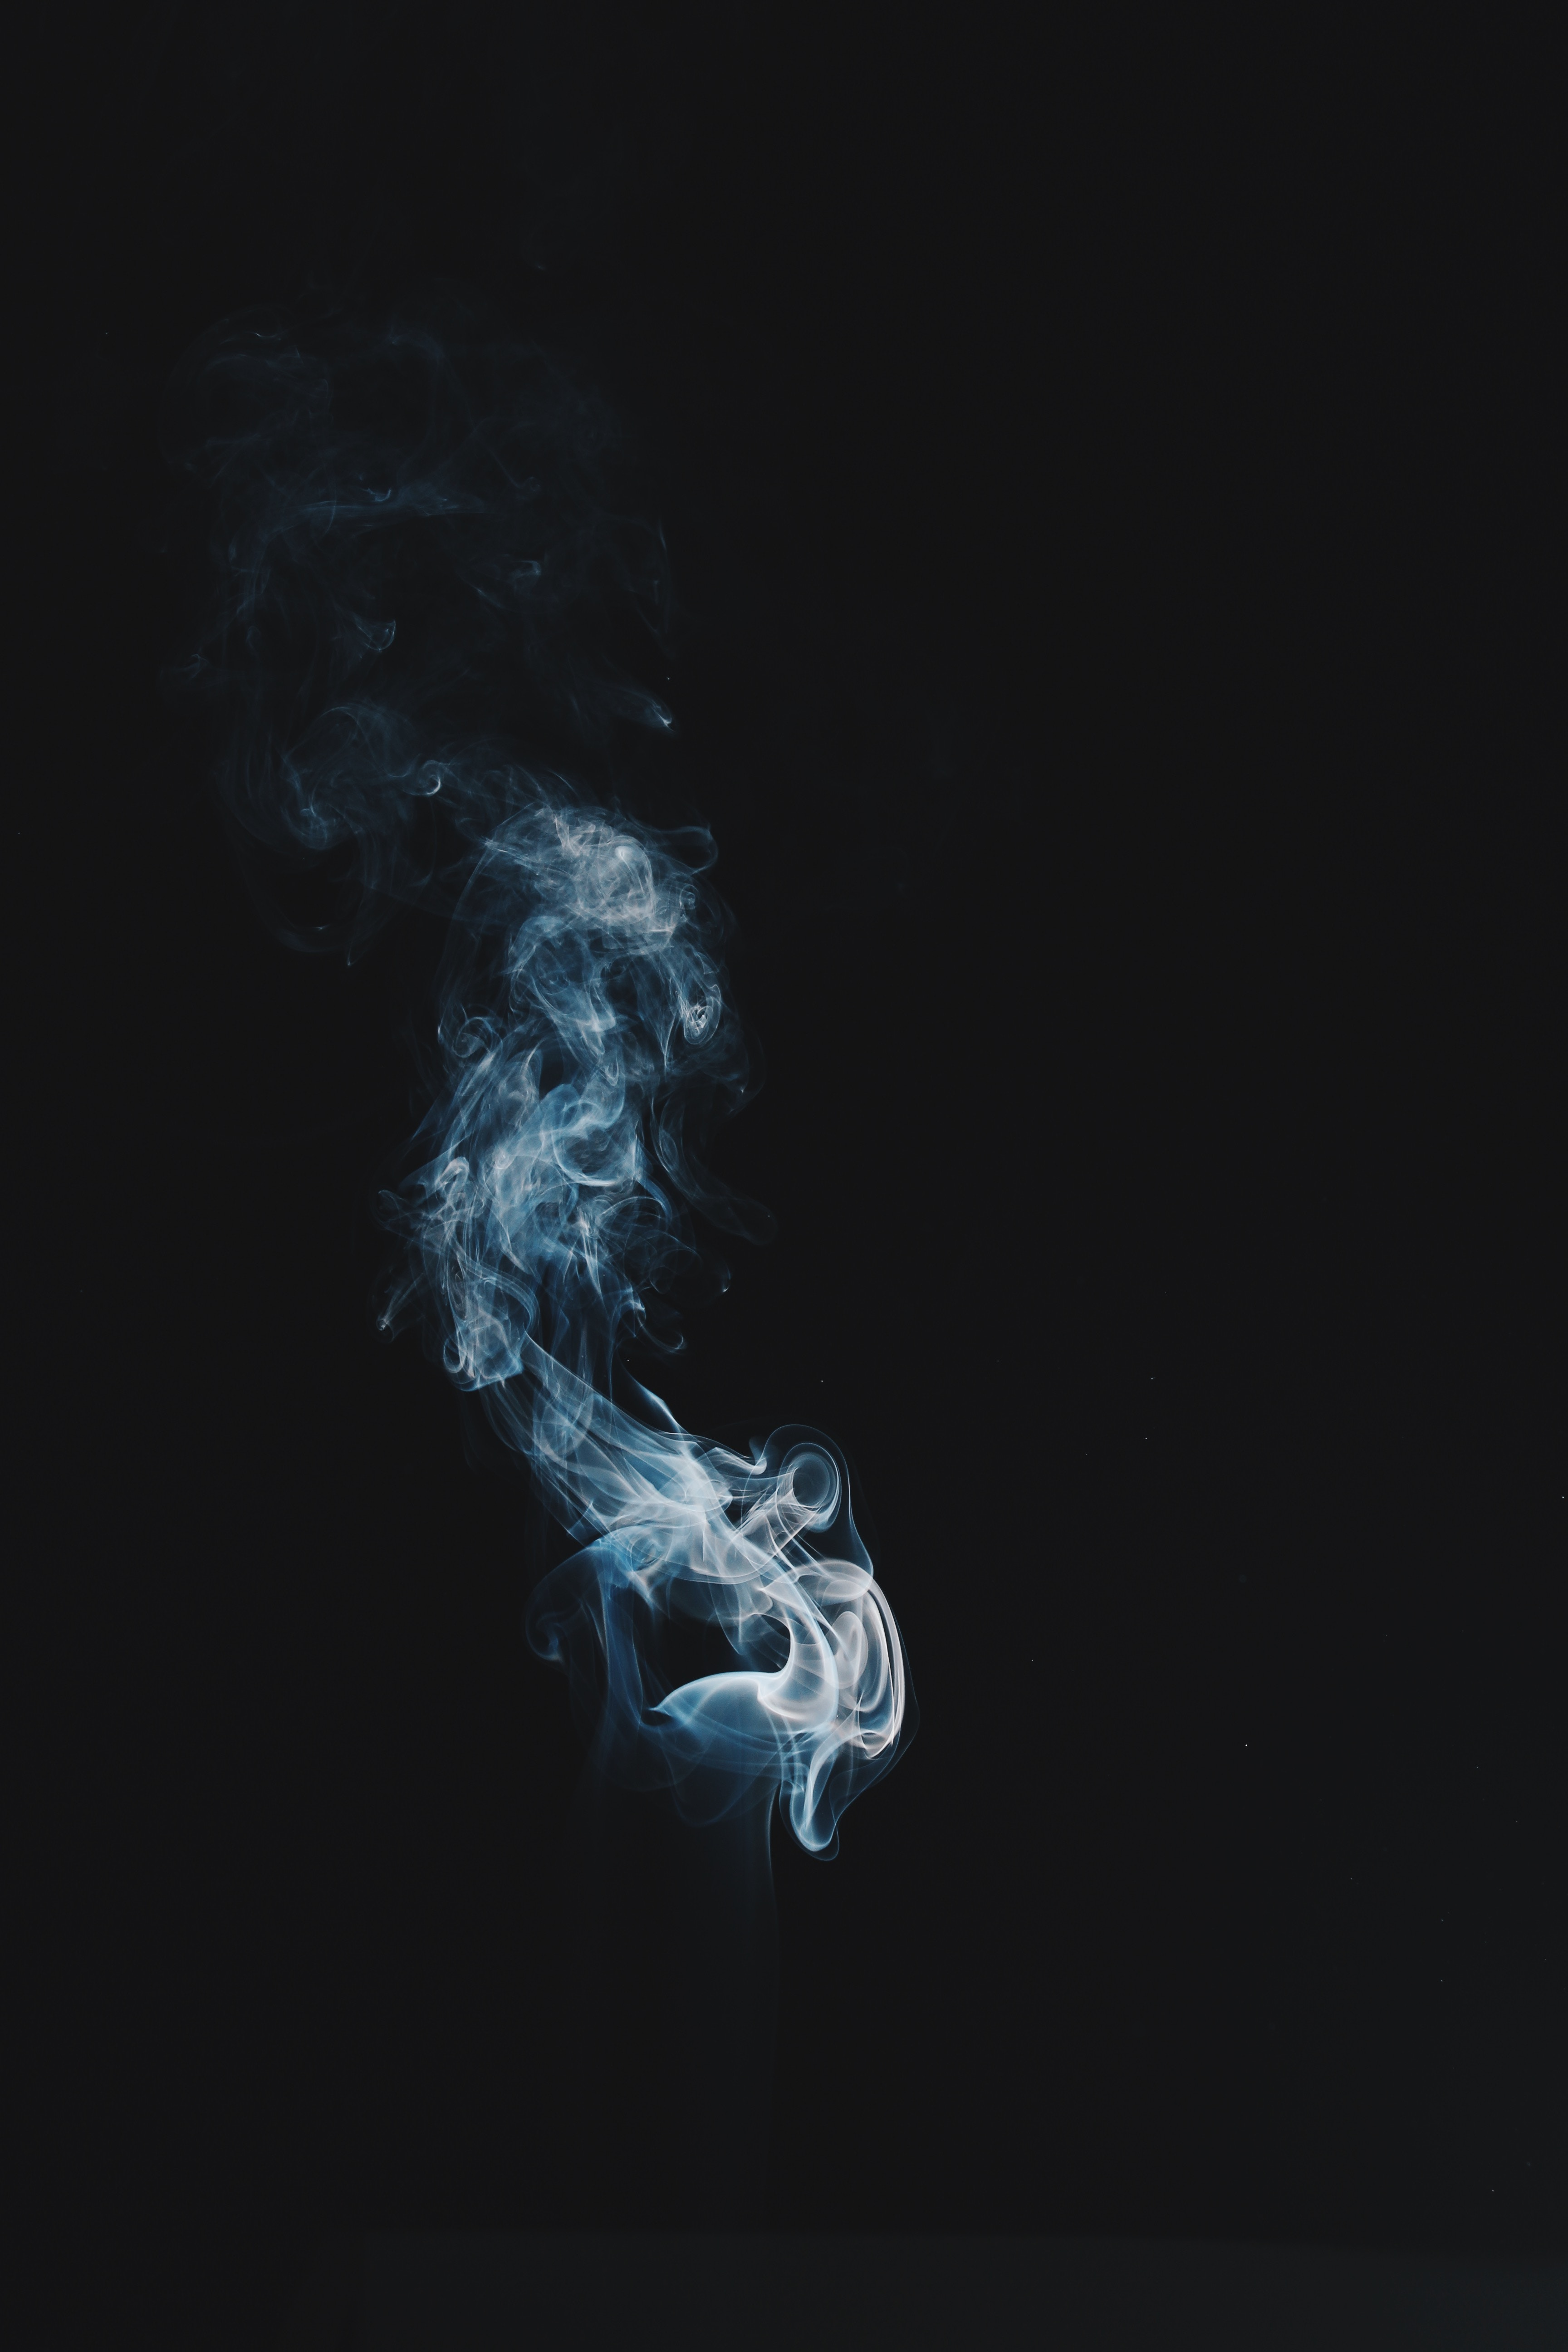 109736 Screensavers and Wallpapers Shroud for phone. Download Abstract, Smoke, Dark, Darkness, Colored Smoke, Coloured Smoke, Shroud, Clot pictures for free